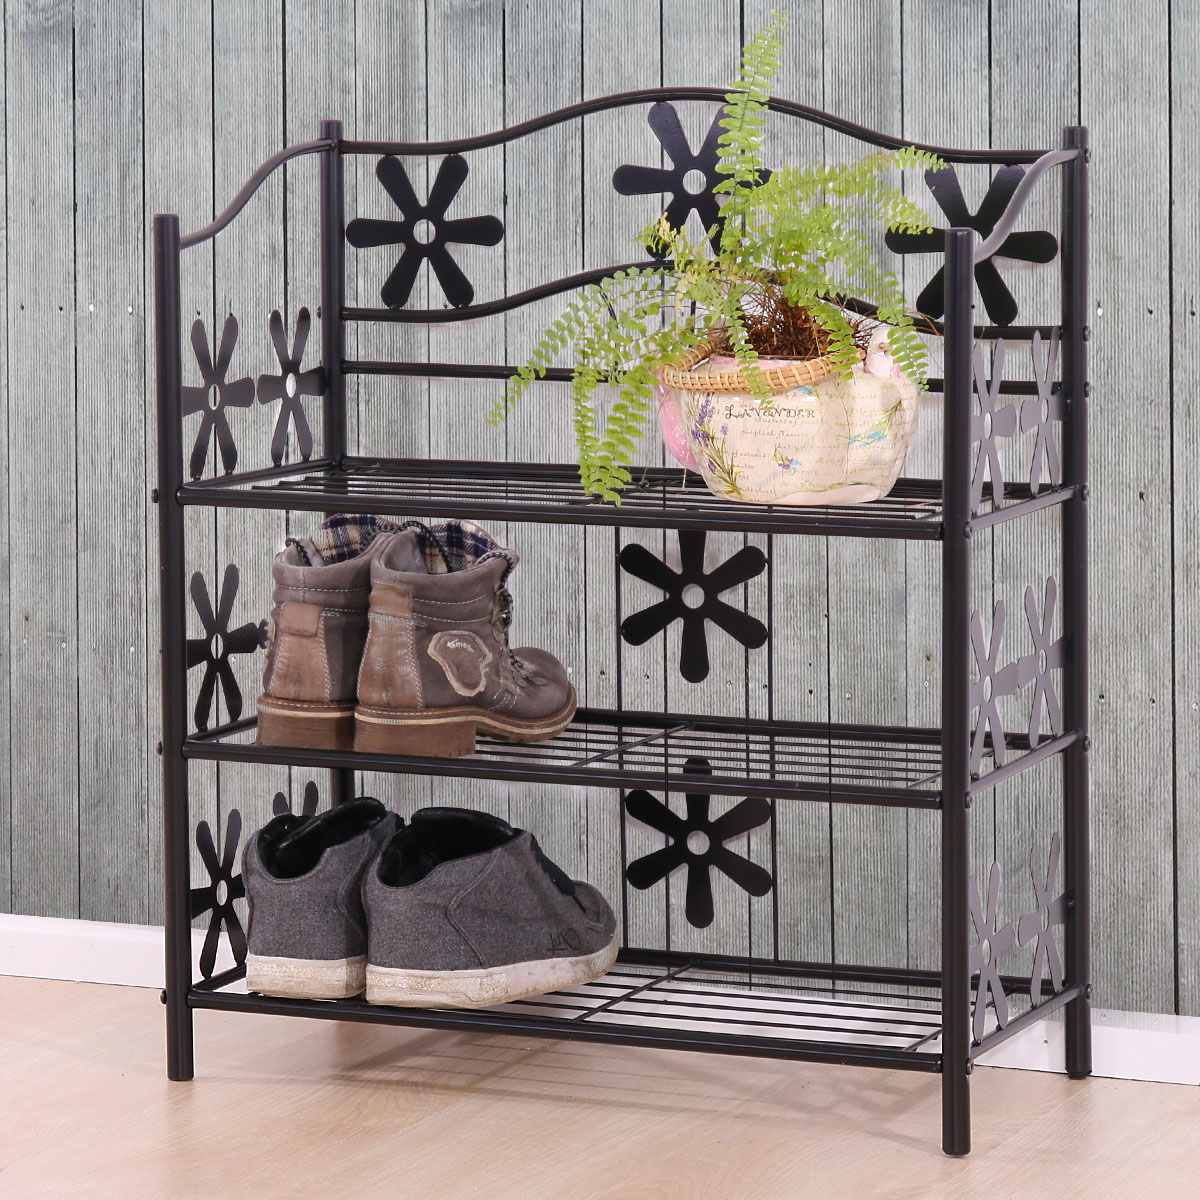 regal metall b cherregal schuhregal standregal genf h he. Black Bedroom Furniture Sets. Home Design Ideas